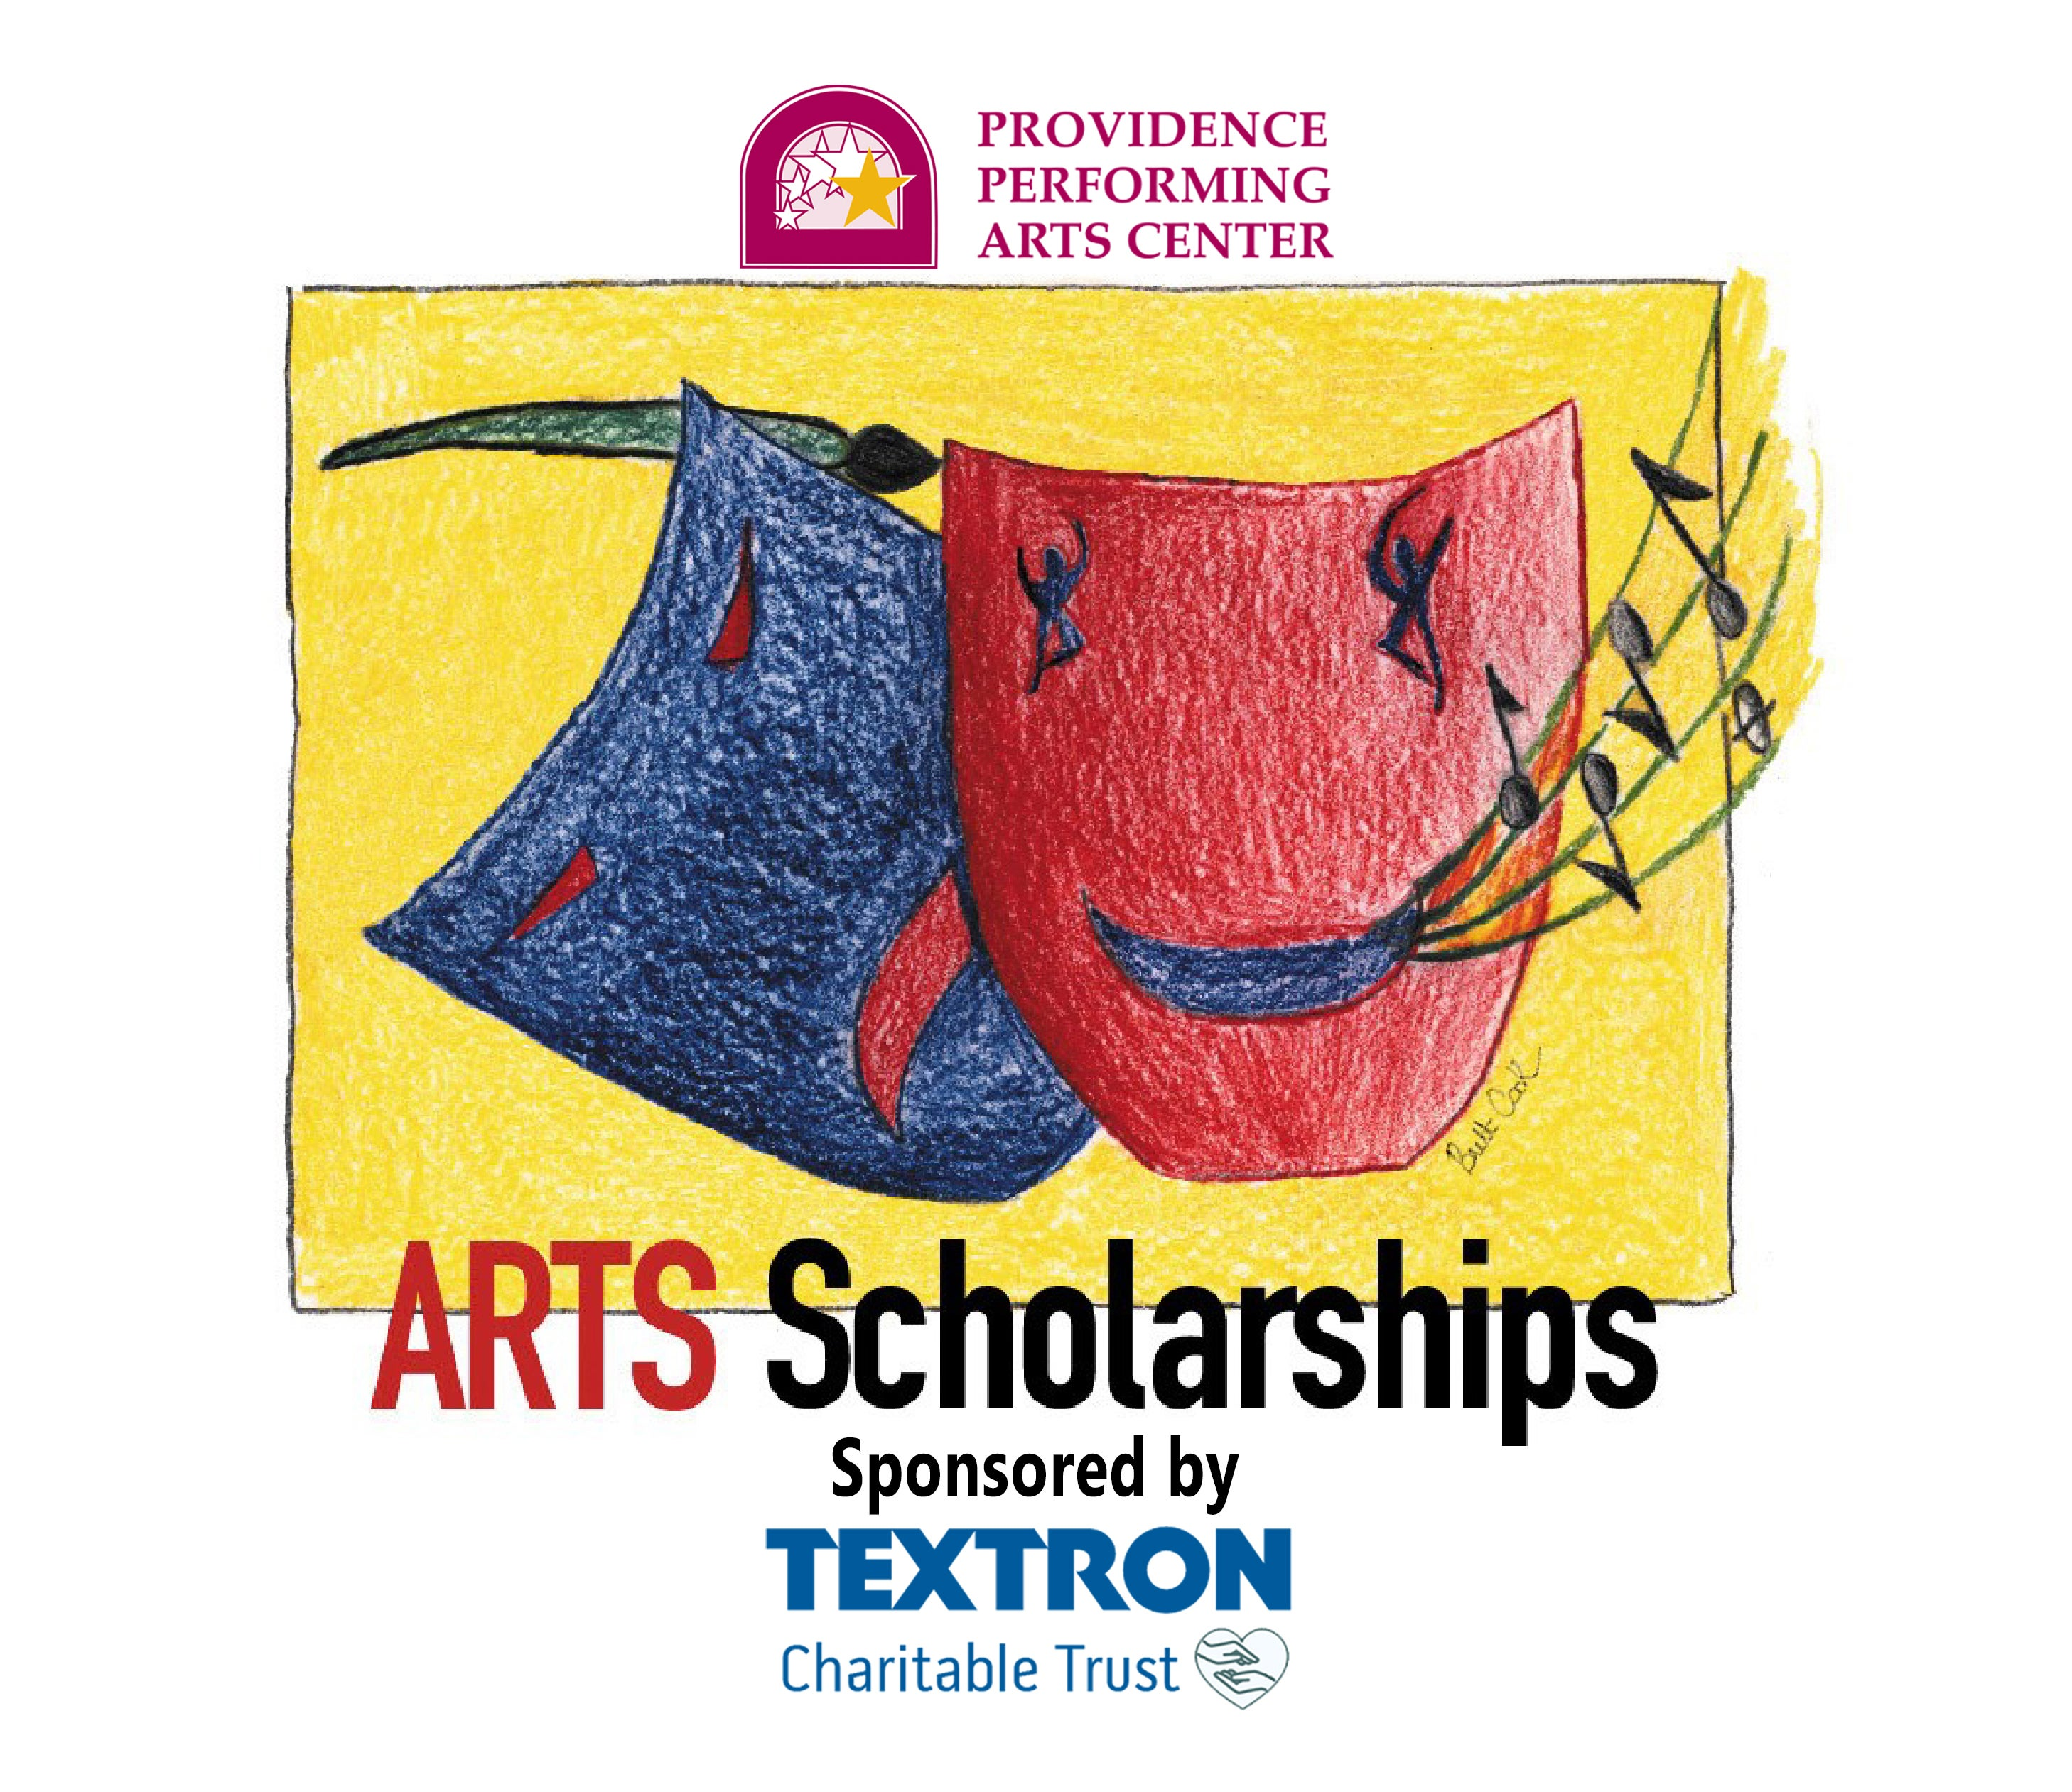 PPAC's Arts Scholarships, sponsored by Textron Charitable Trust.